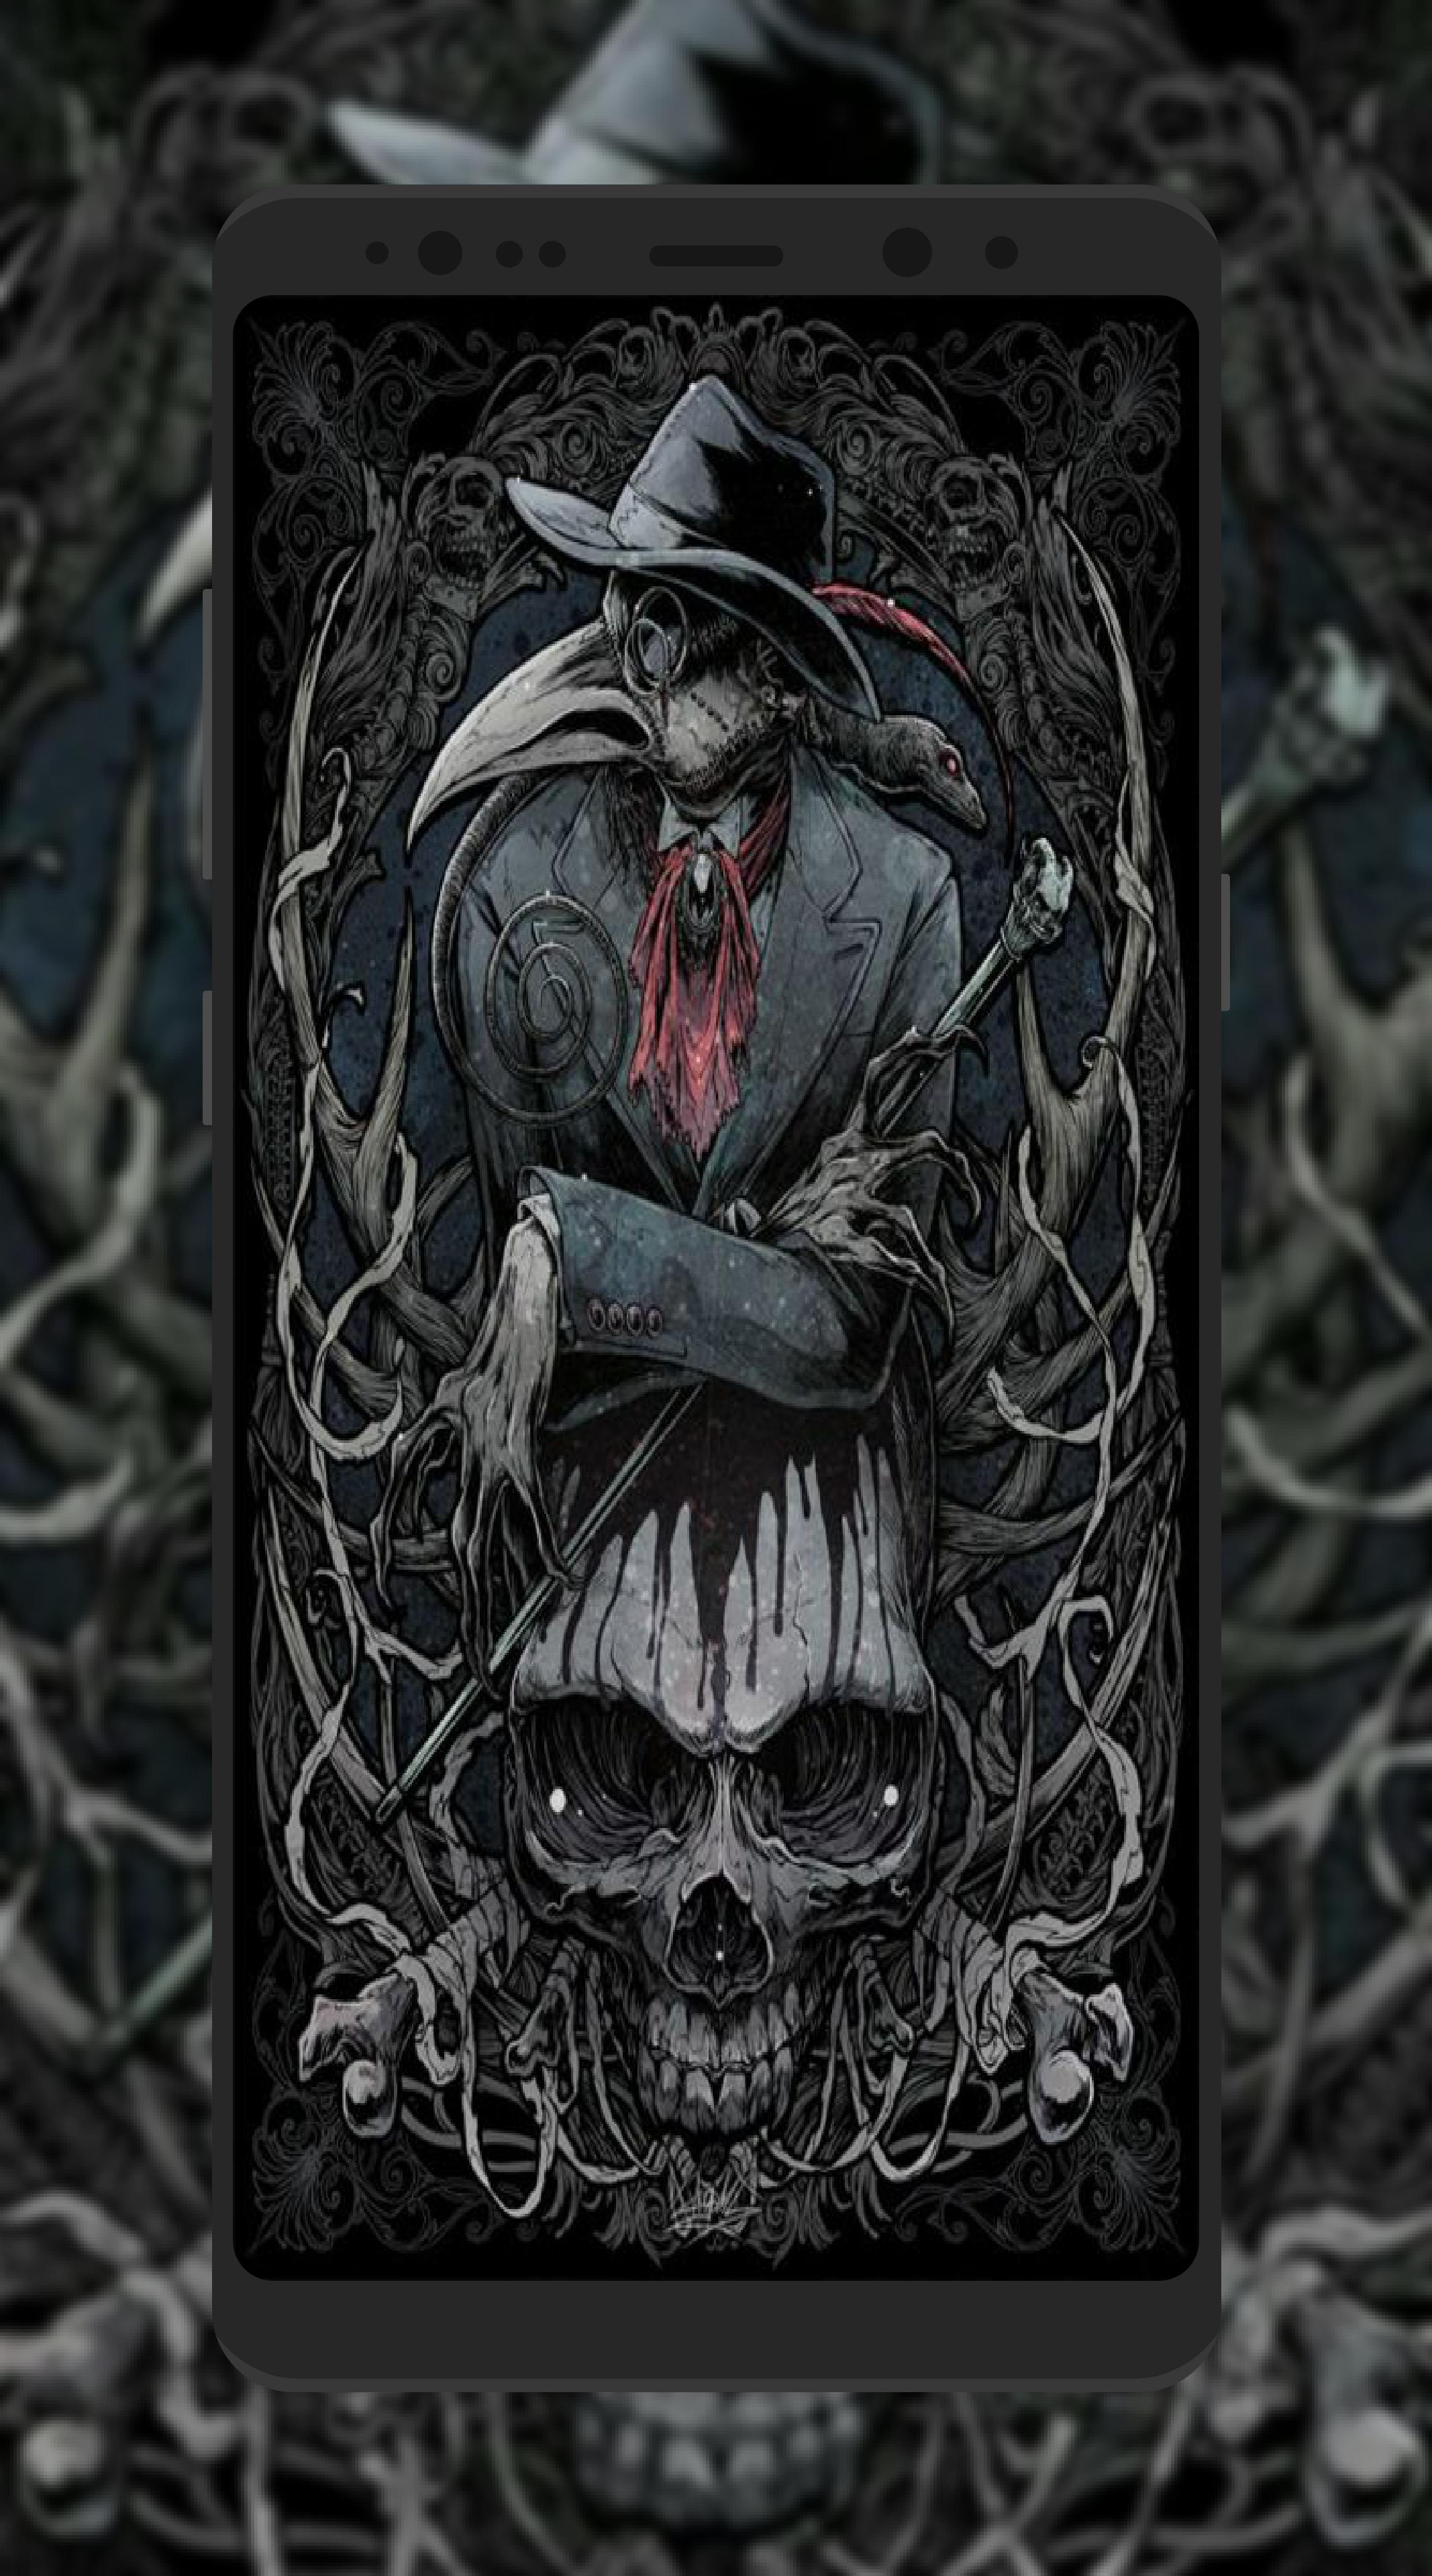 Plague Doctor Wallpapers for Android - APK Download